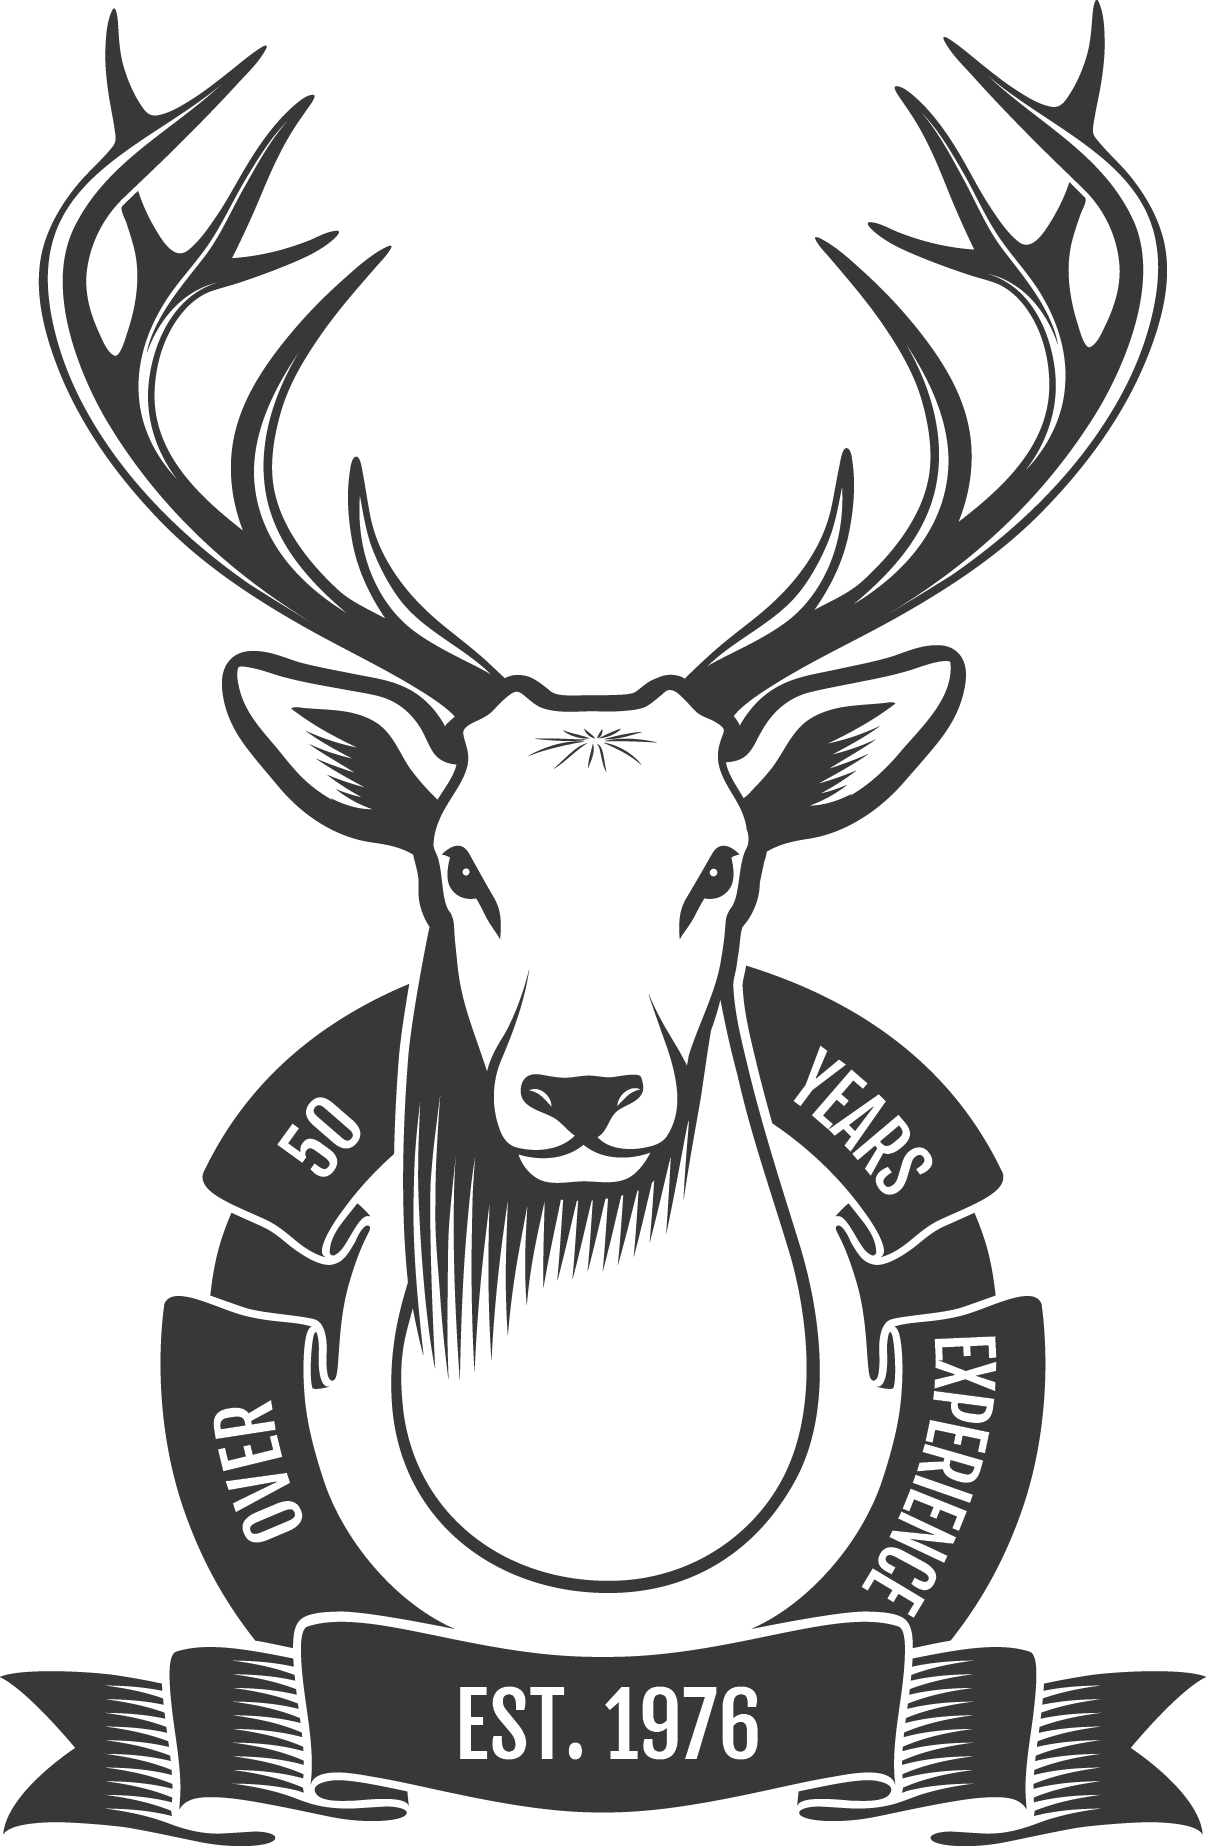 White tail deer mount graphic with a ribbon stating 'Over 50 Years Experience'